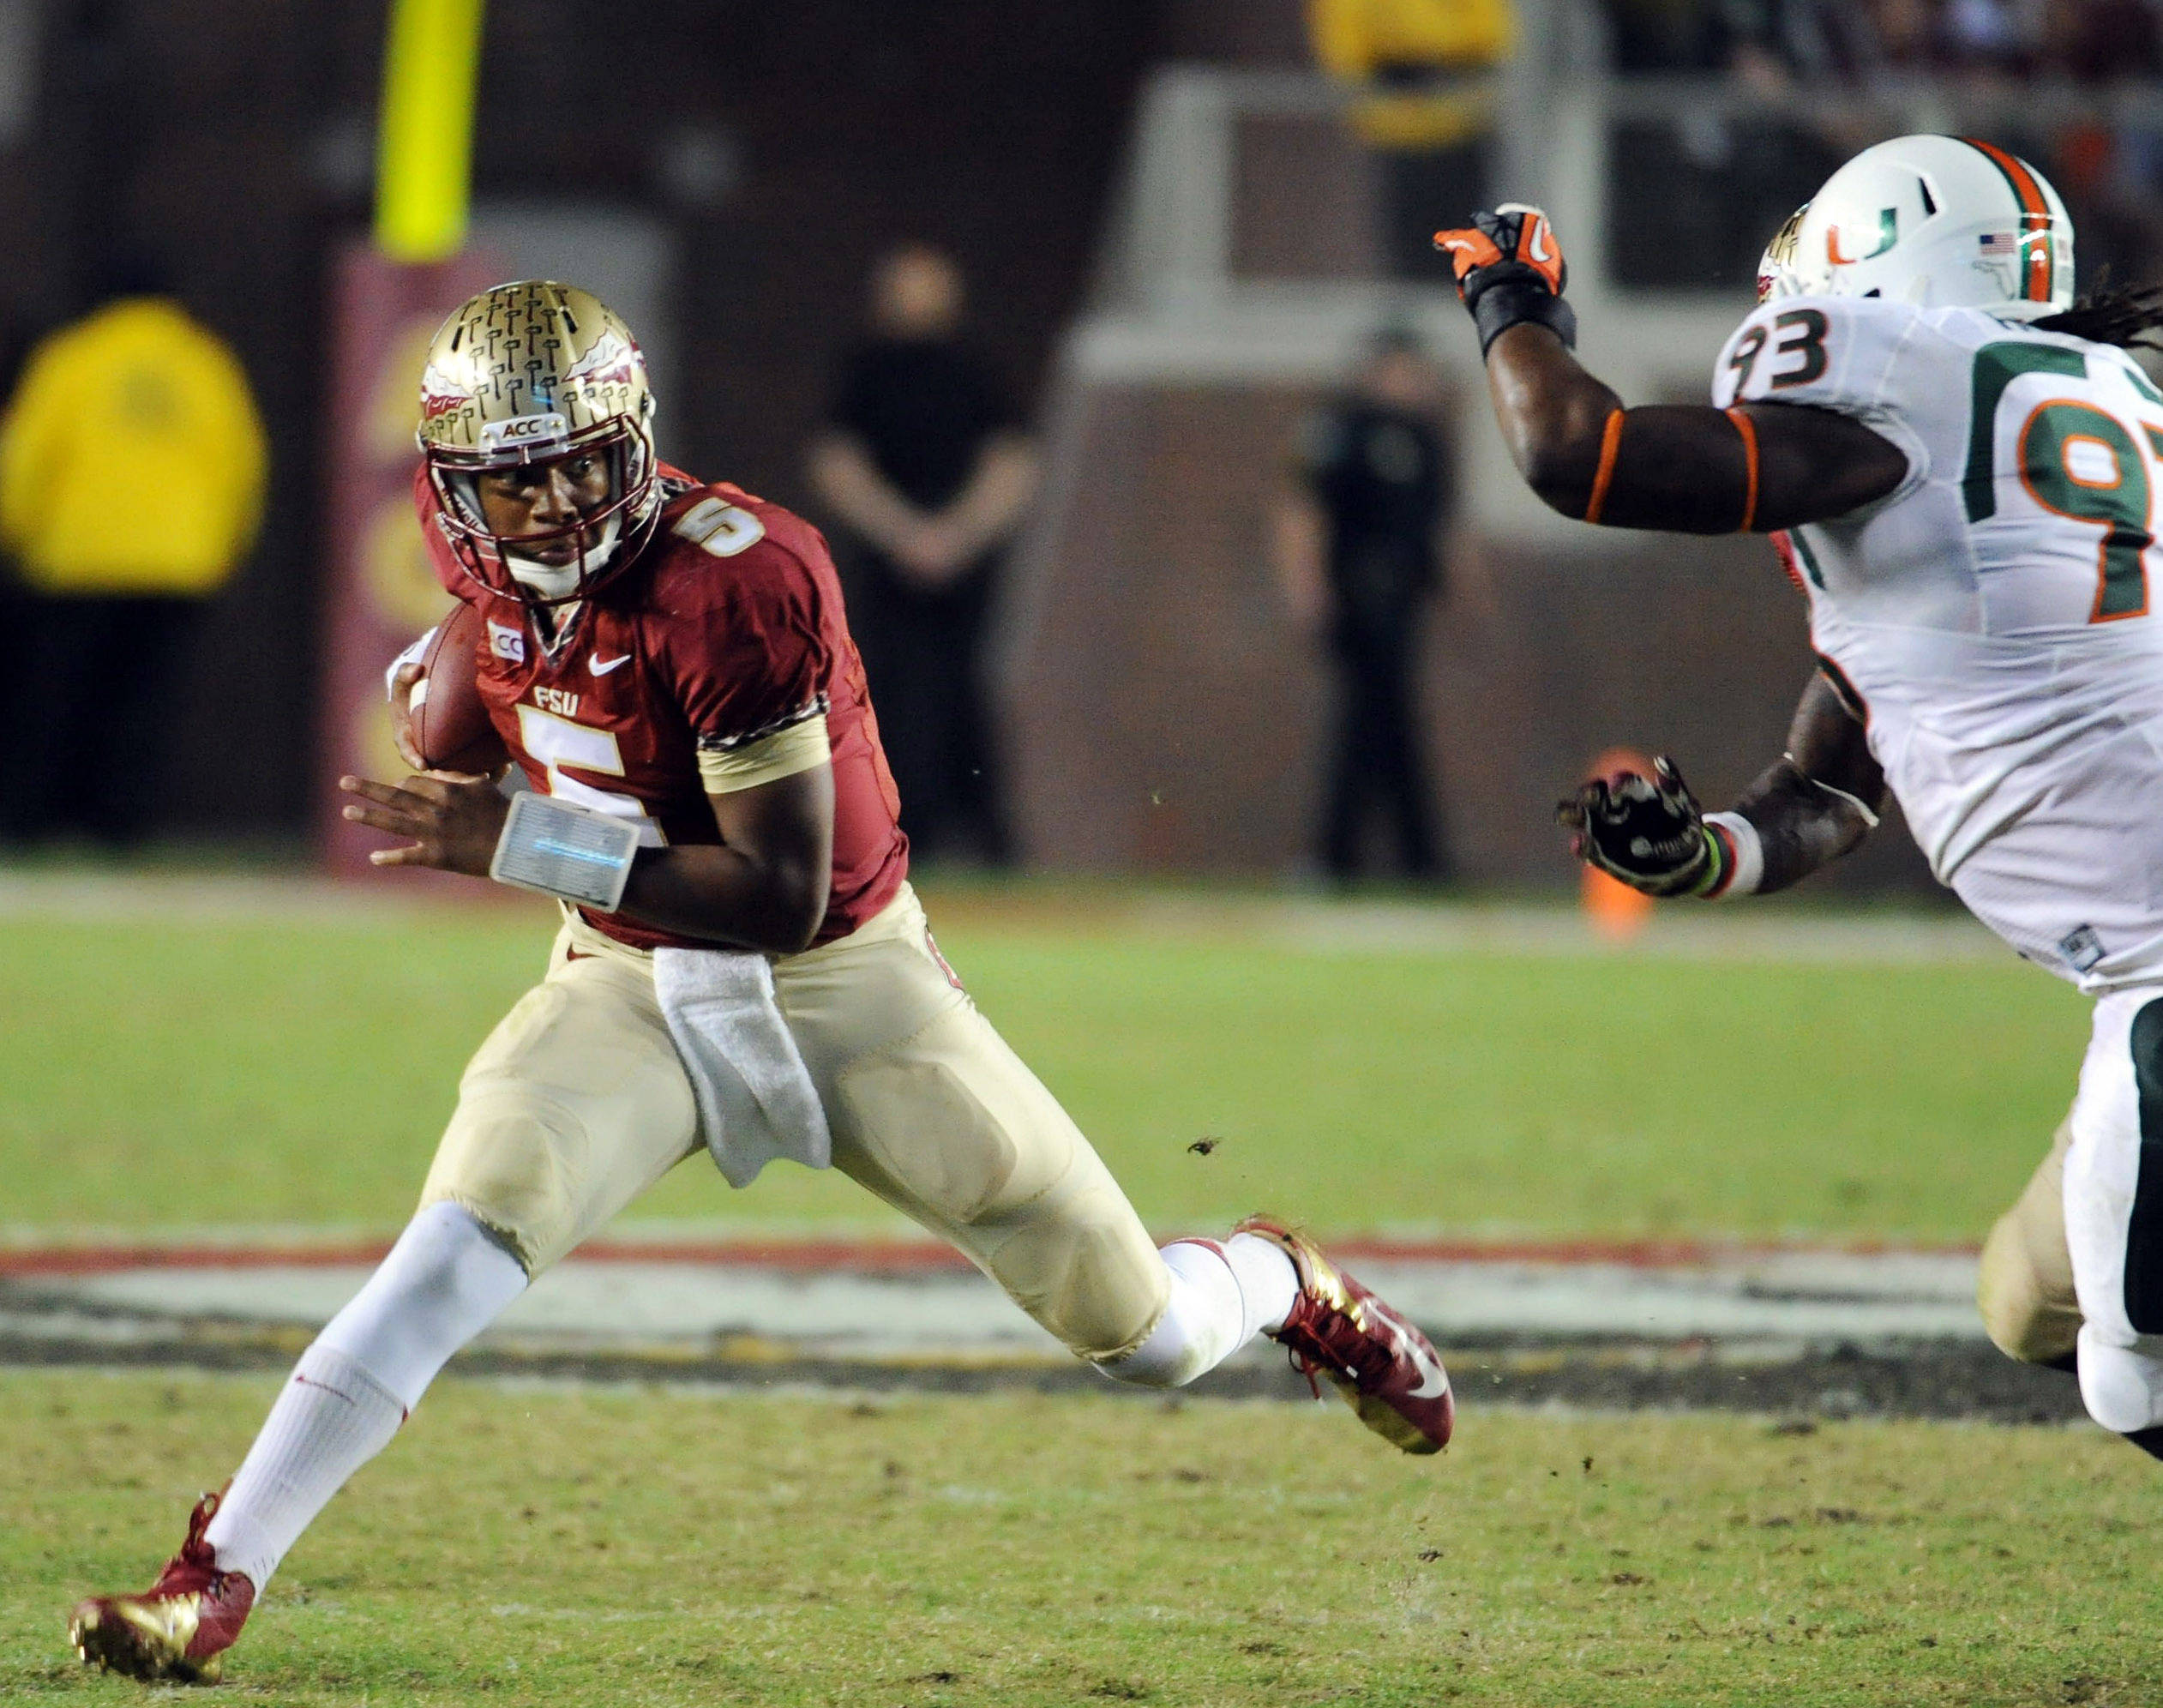 Florida State Seminoles quarterback Jameis Winston (5) makes a move to avoid Miami Hurricanes defensive lineman Luther Robinson (93) during the second half at Doak Campbell Stadium. Mandatory Credit: Melina Vastola-USA TODAY Sports